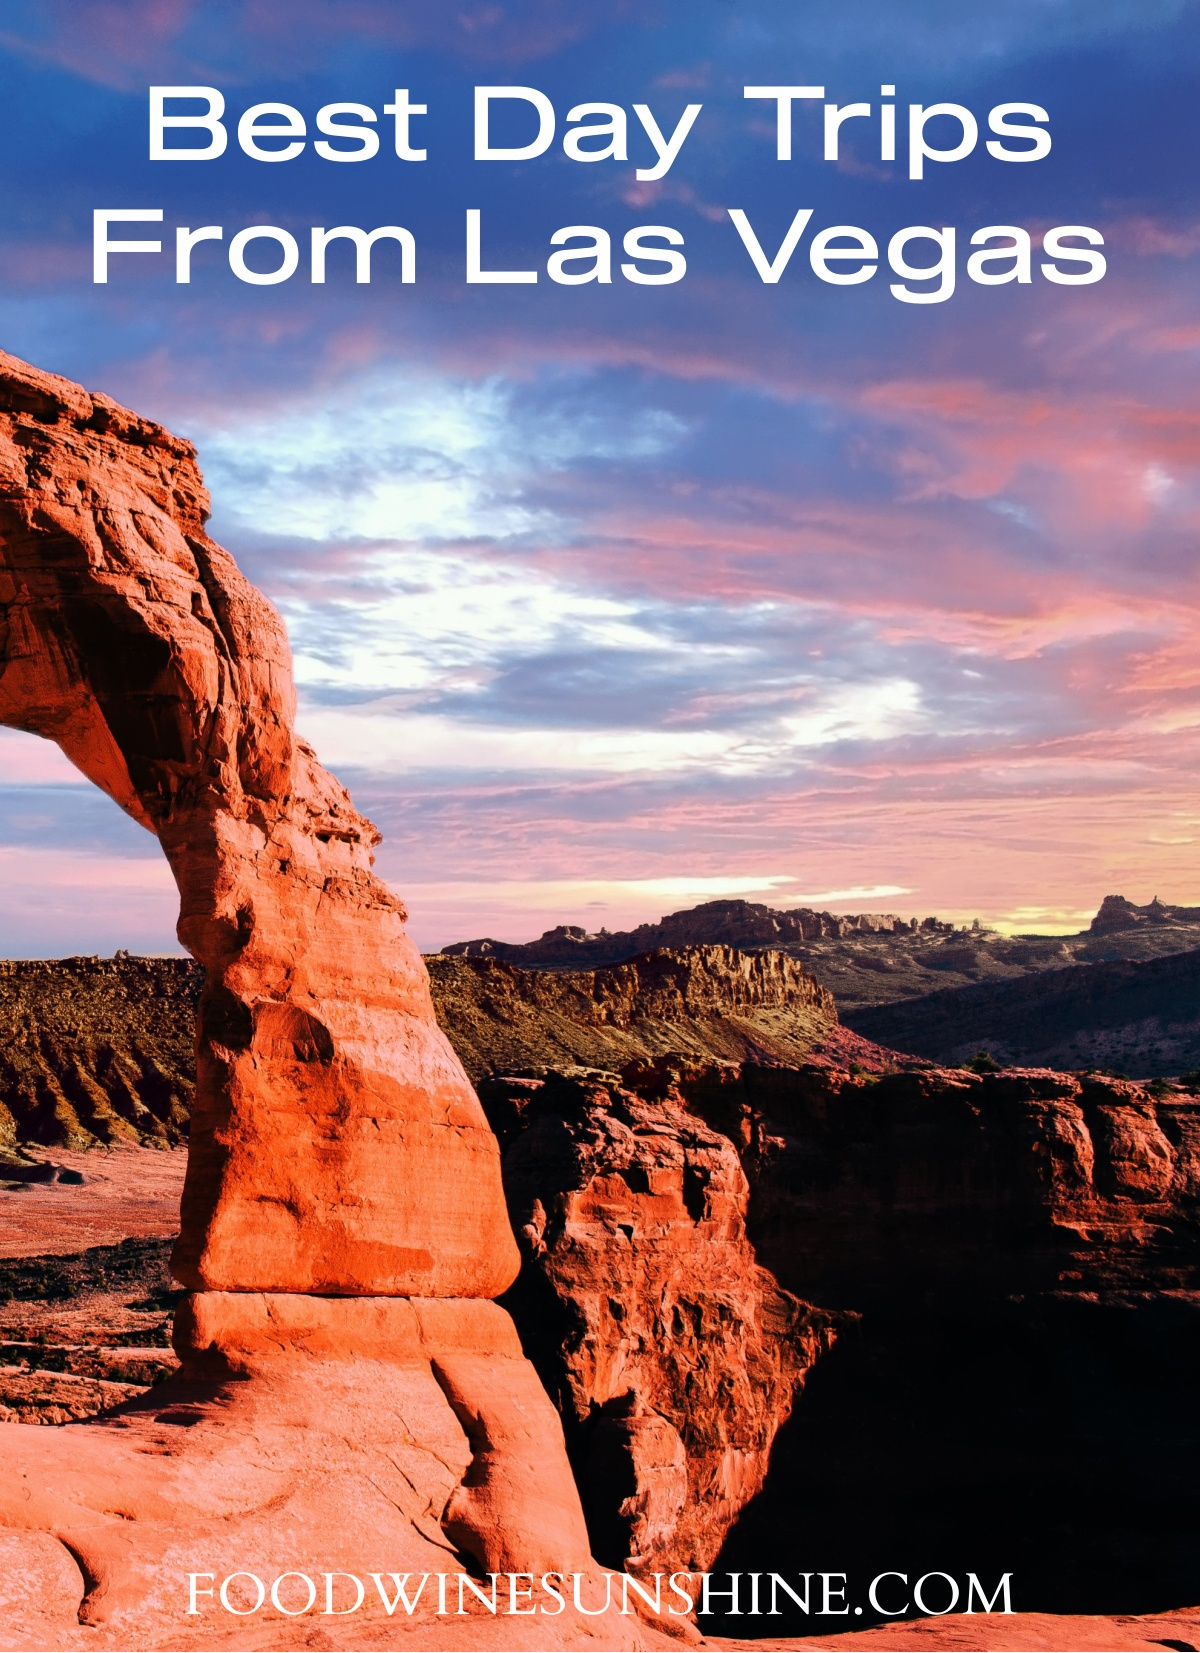 Best Day Trips From Las Vegas